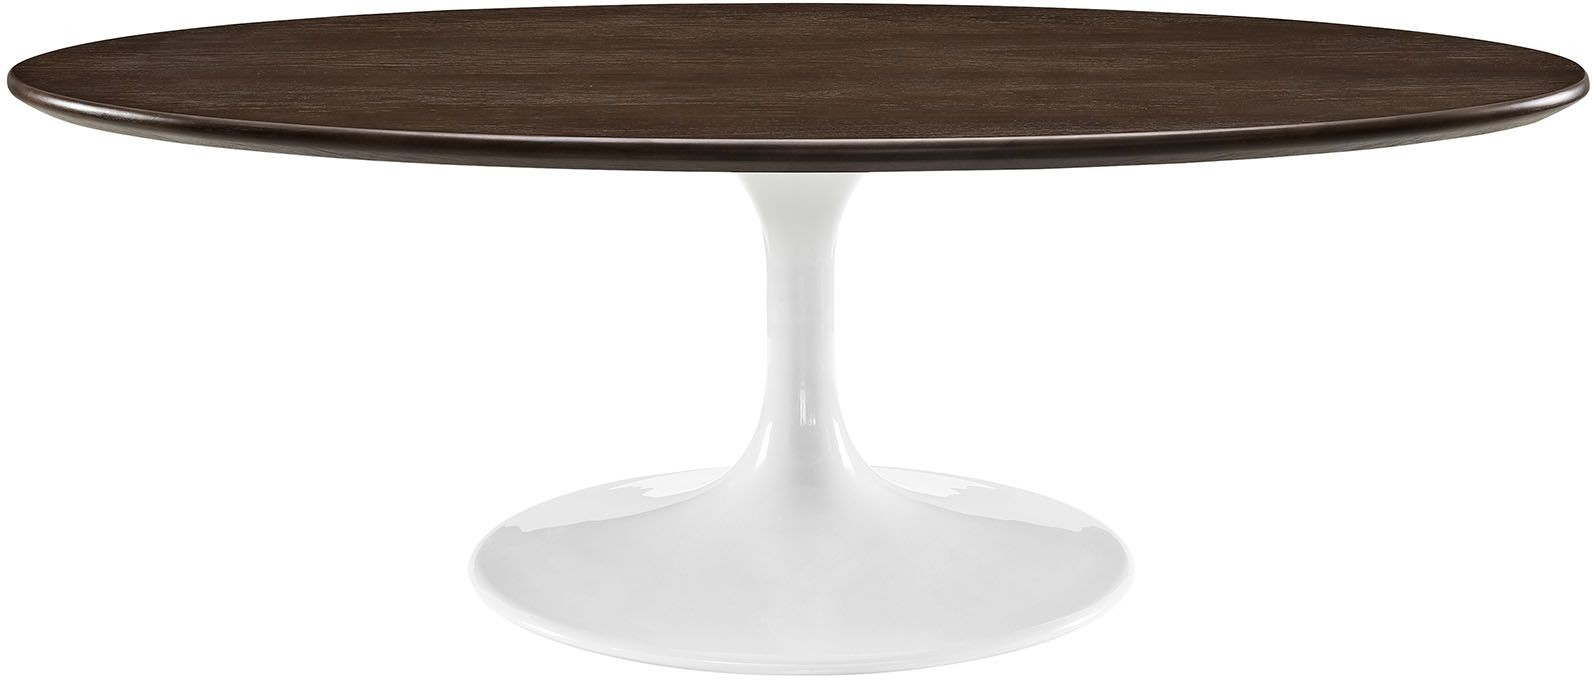 Lippa walnut 48 oval shaped walnut coffee table eei 2020 wal renegade furniture Oval shaped coffee table